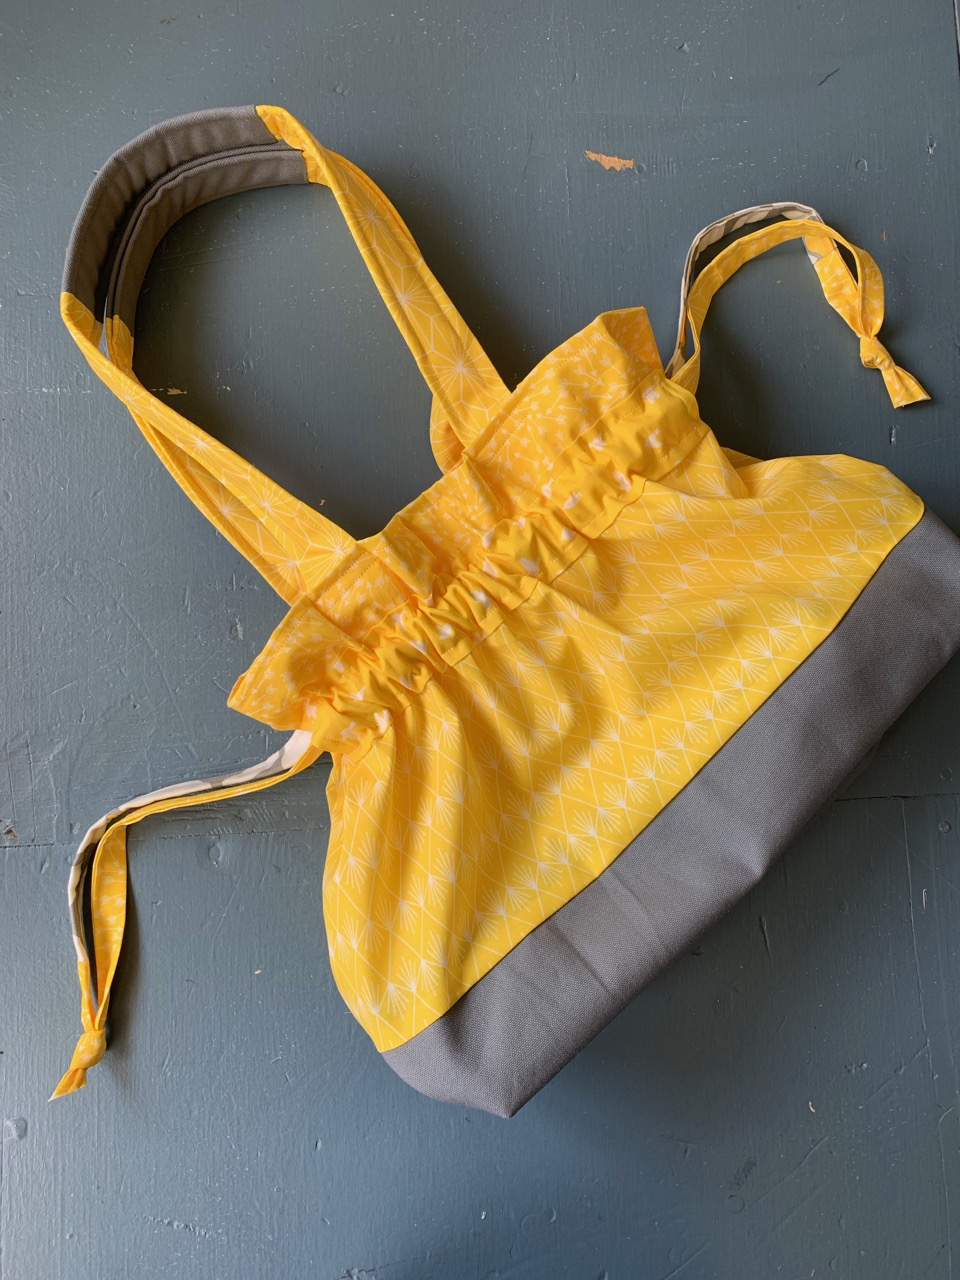 Sunny Days Ahead Tote Sewing Tutorial by Sewspire